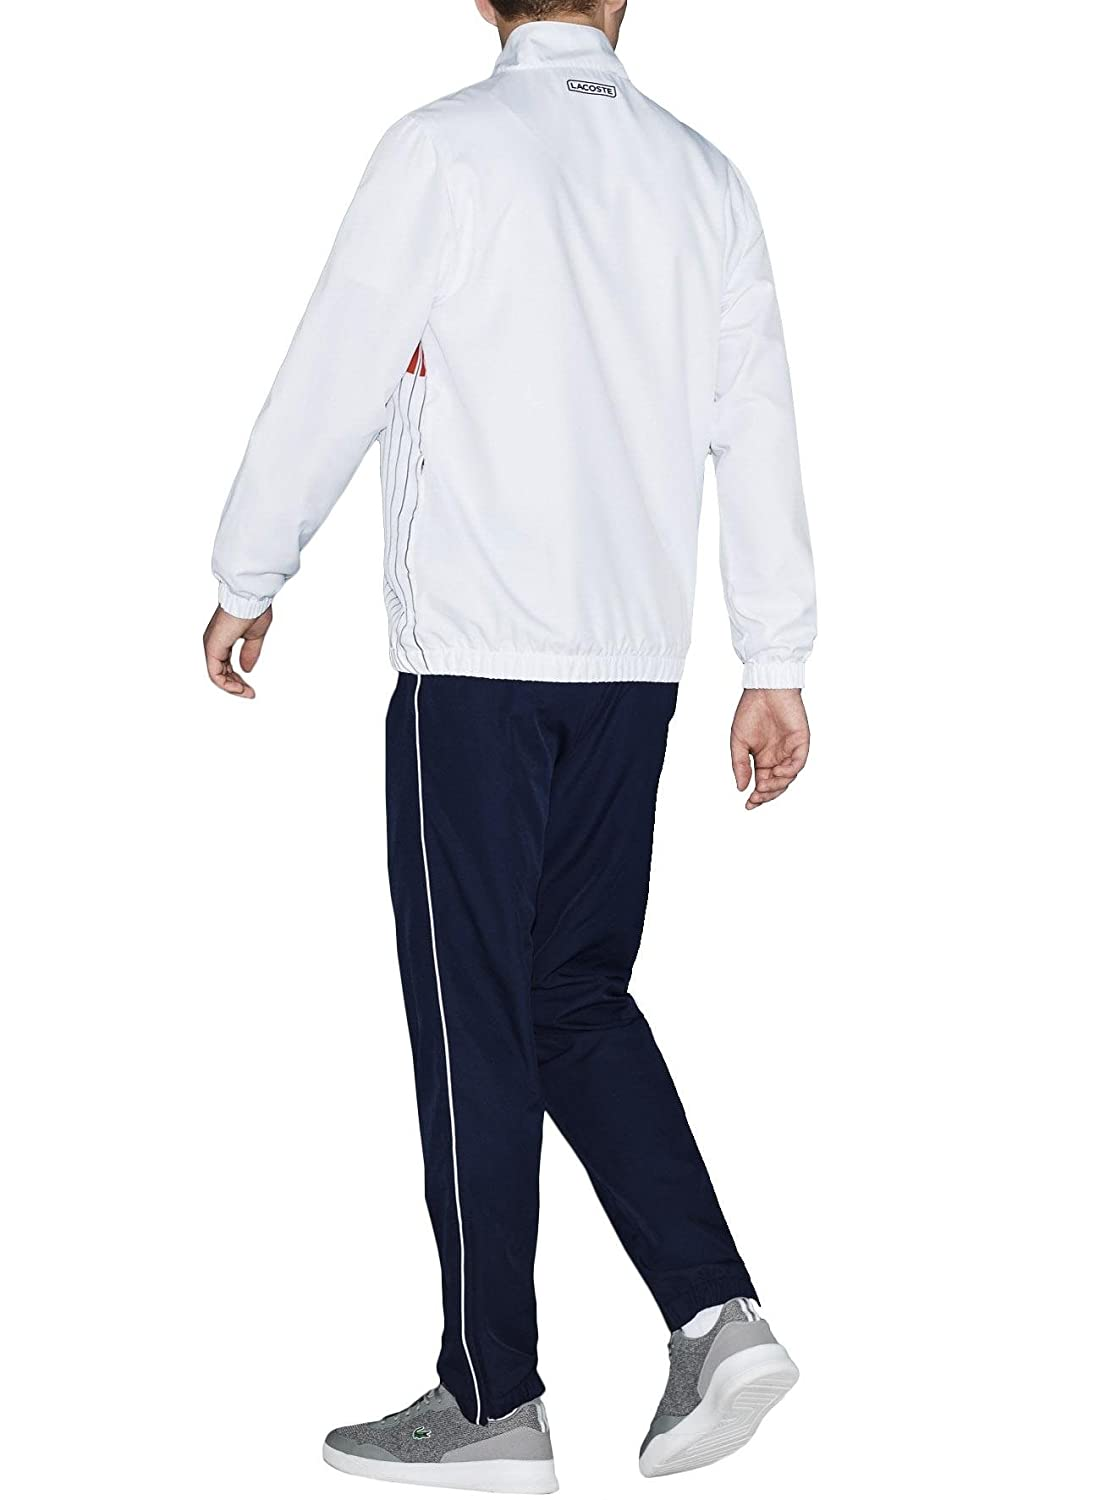 Lacoste Sport - Set - Chã¡Ndal - White/Navy Blue/Mexico Red/Navy ...